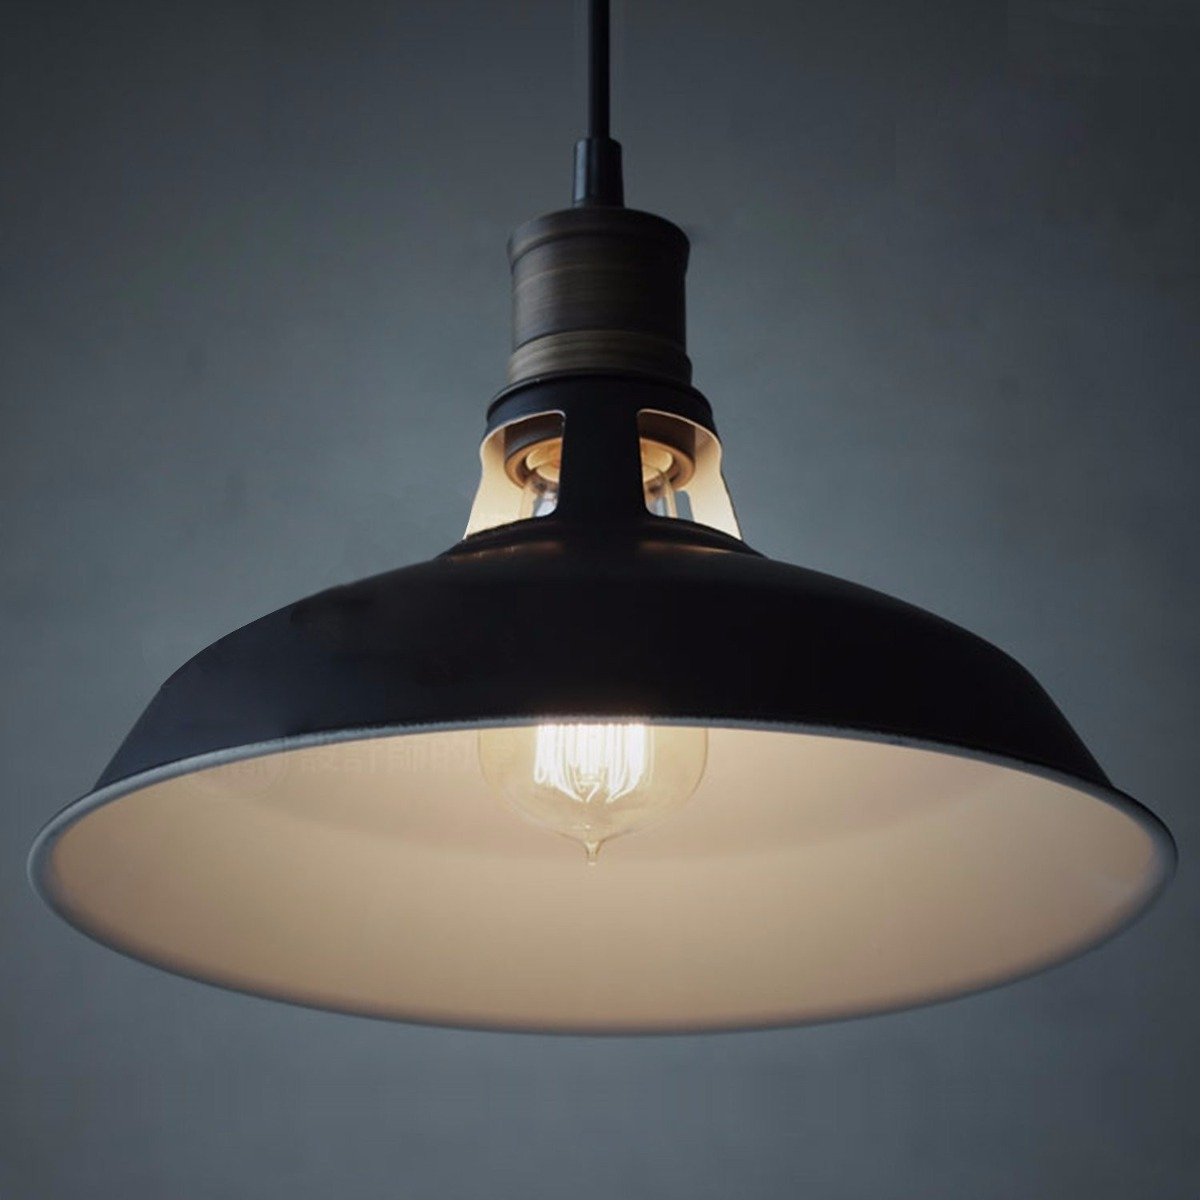 Lampara colgante vintage industrial edison retro for Decoracion retro industrial